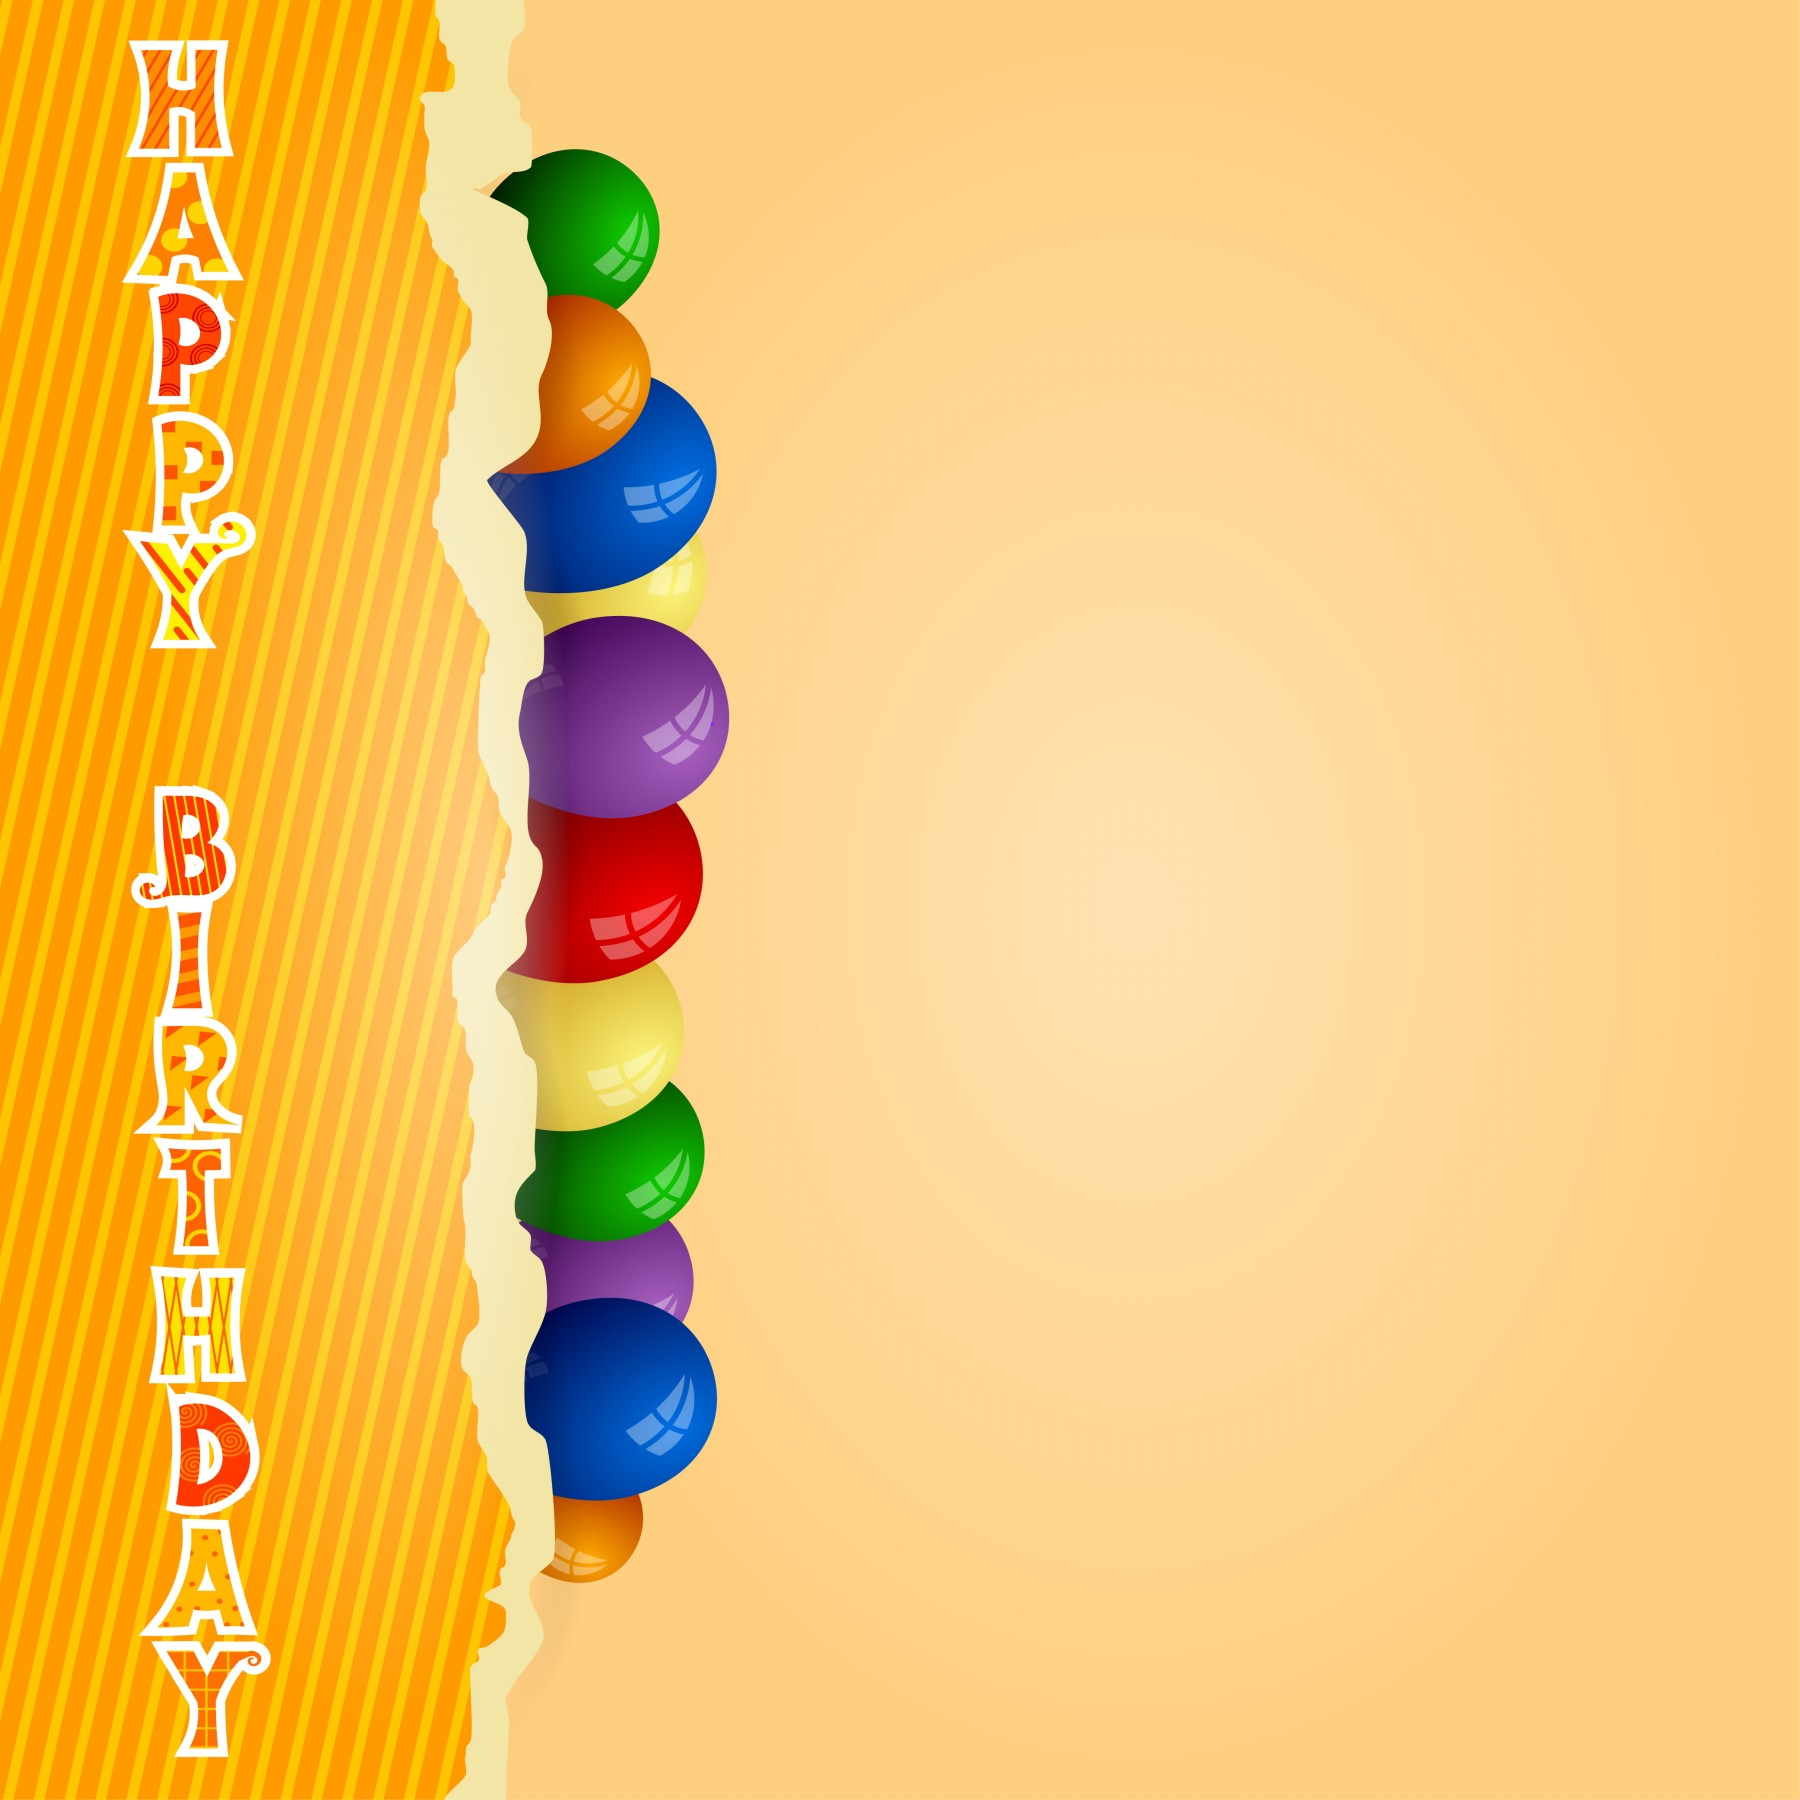 Birthday card backgrounds wallpapersafari - Happy birthday card wallpaper ...